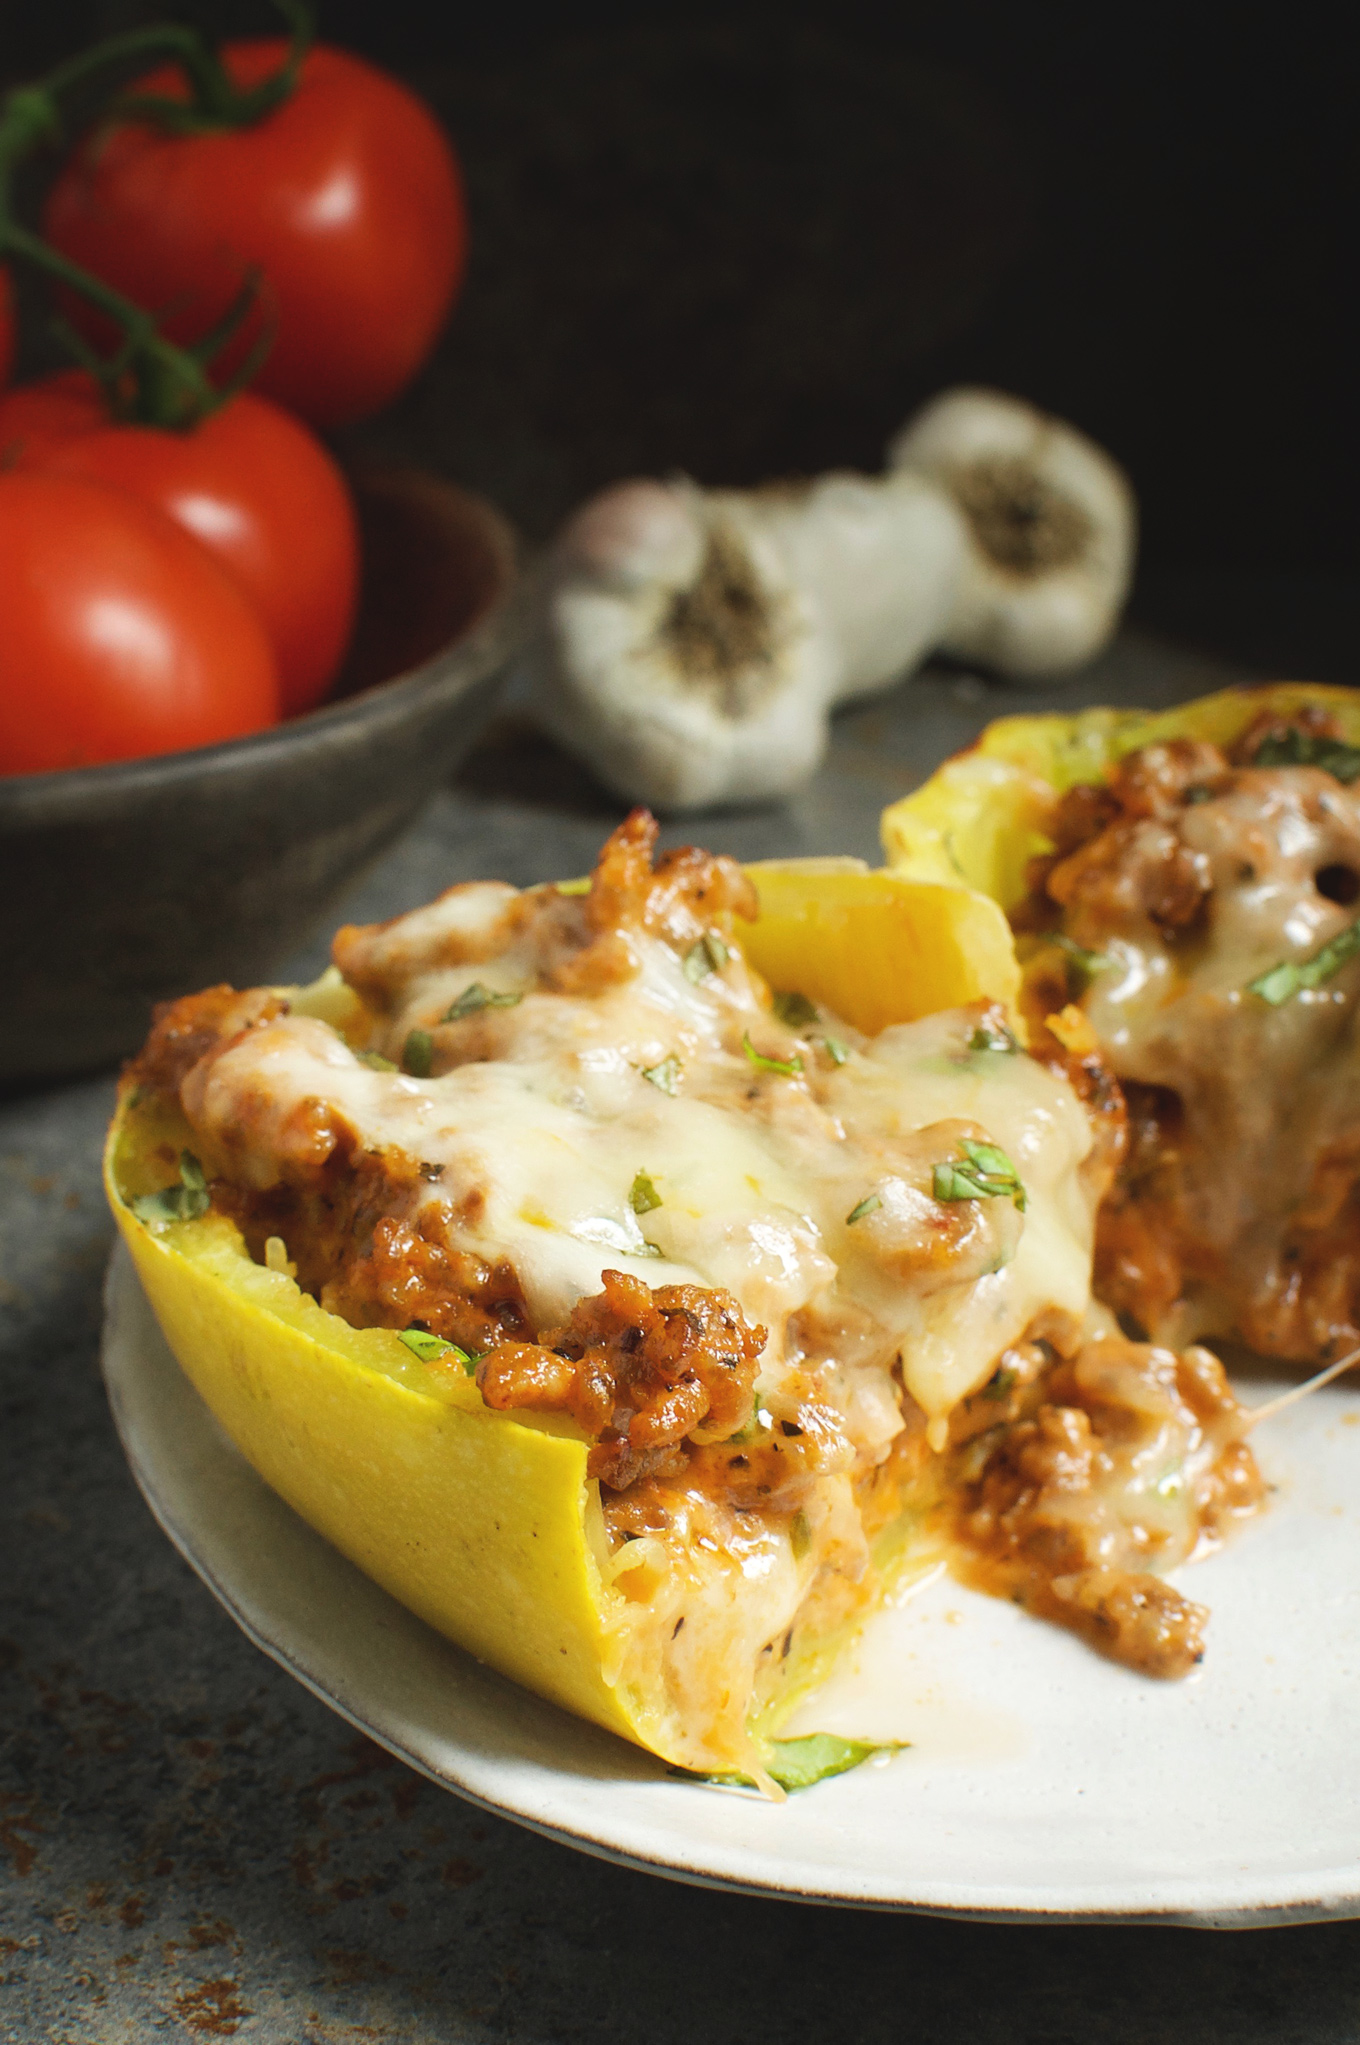 squash spaghetti stuffed sausage recipe meal low carb baked eat healthy eating separate everyone talking delicious simplysohealthy